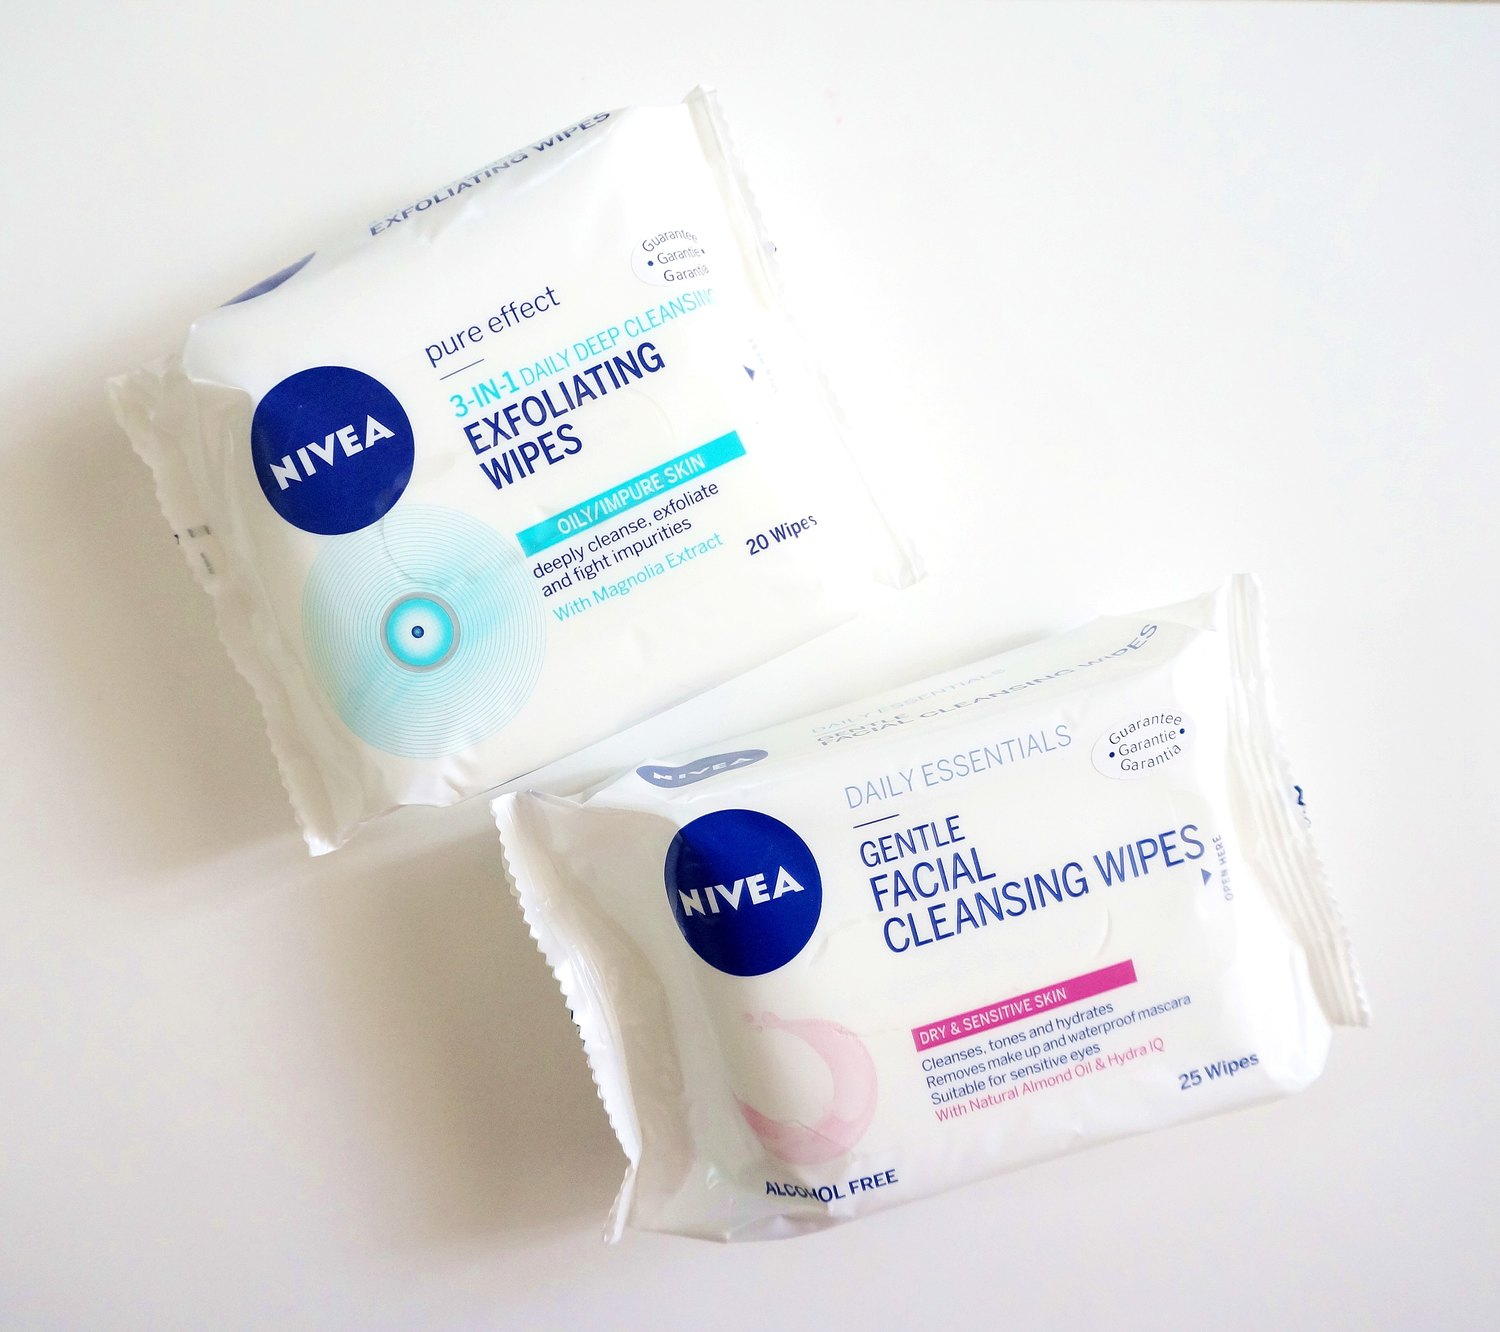 New from Nivea: Gentle Facial Cleansing Wipes and Exfoliating Wipes —  Project Vanity